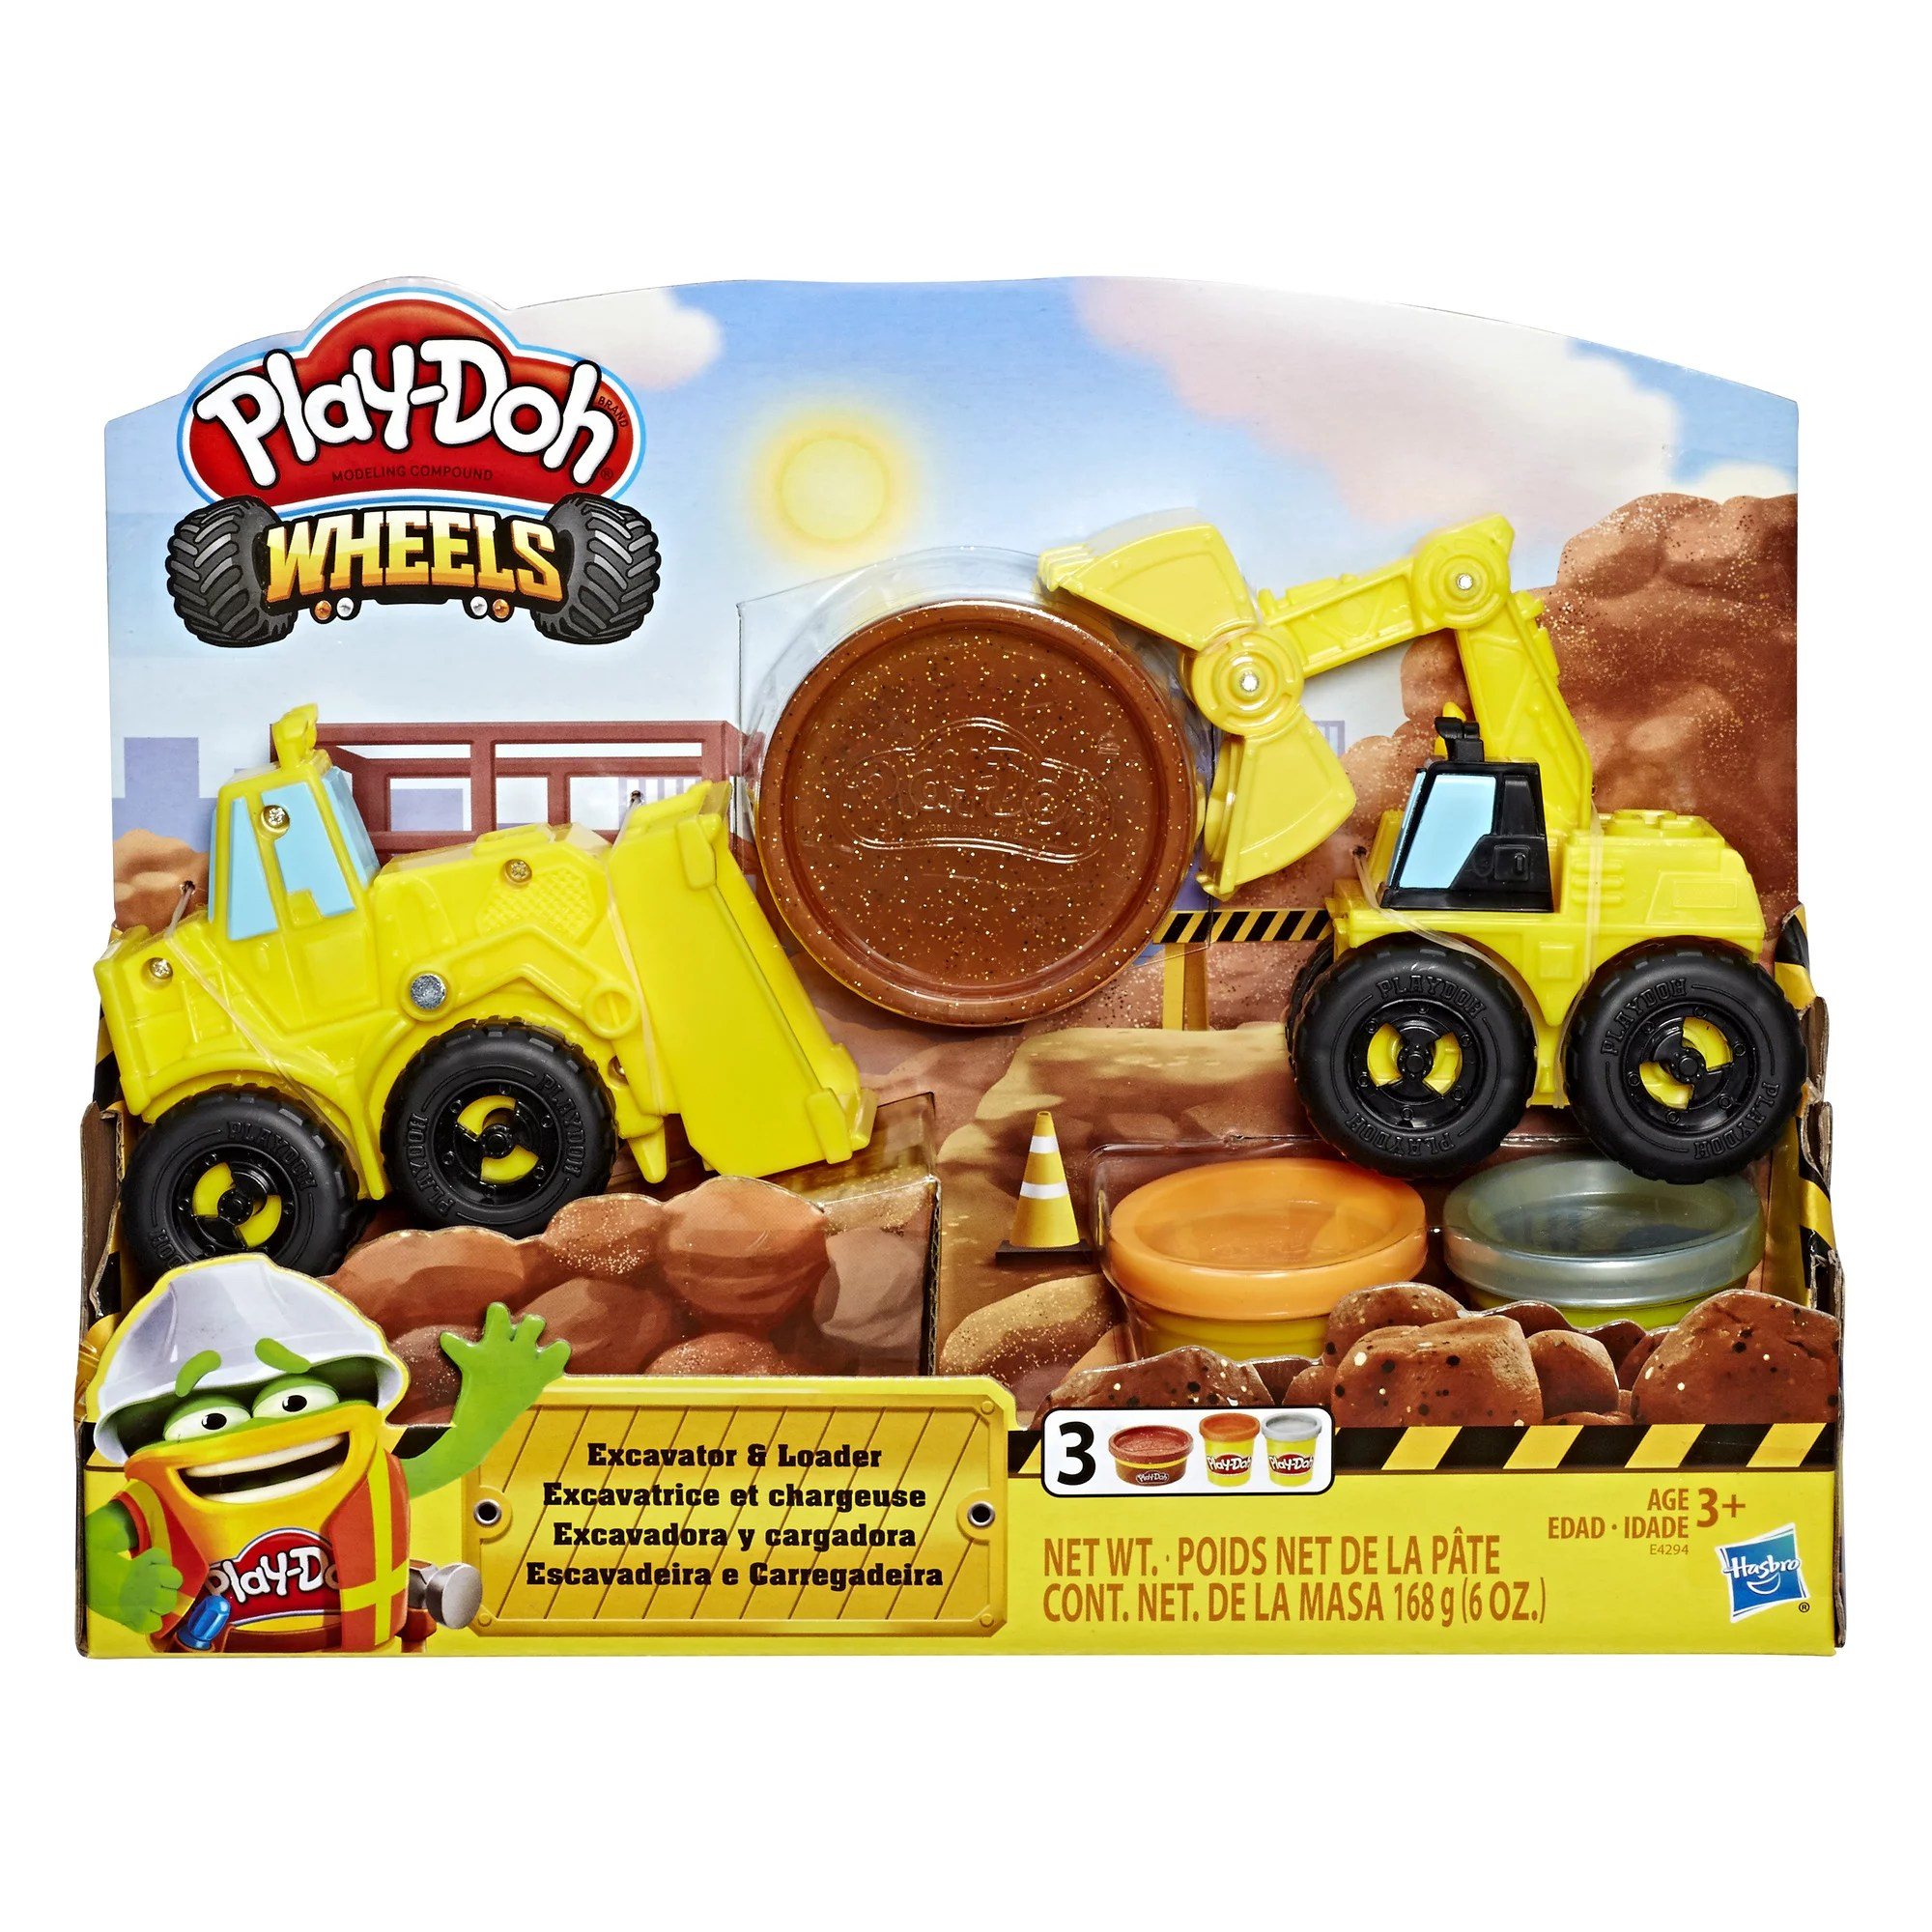 Play Doh Wheels Excavator And Loader Toy Construction Trucks Walmart Com